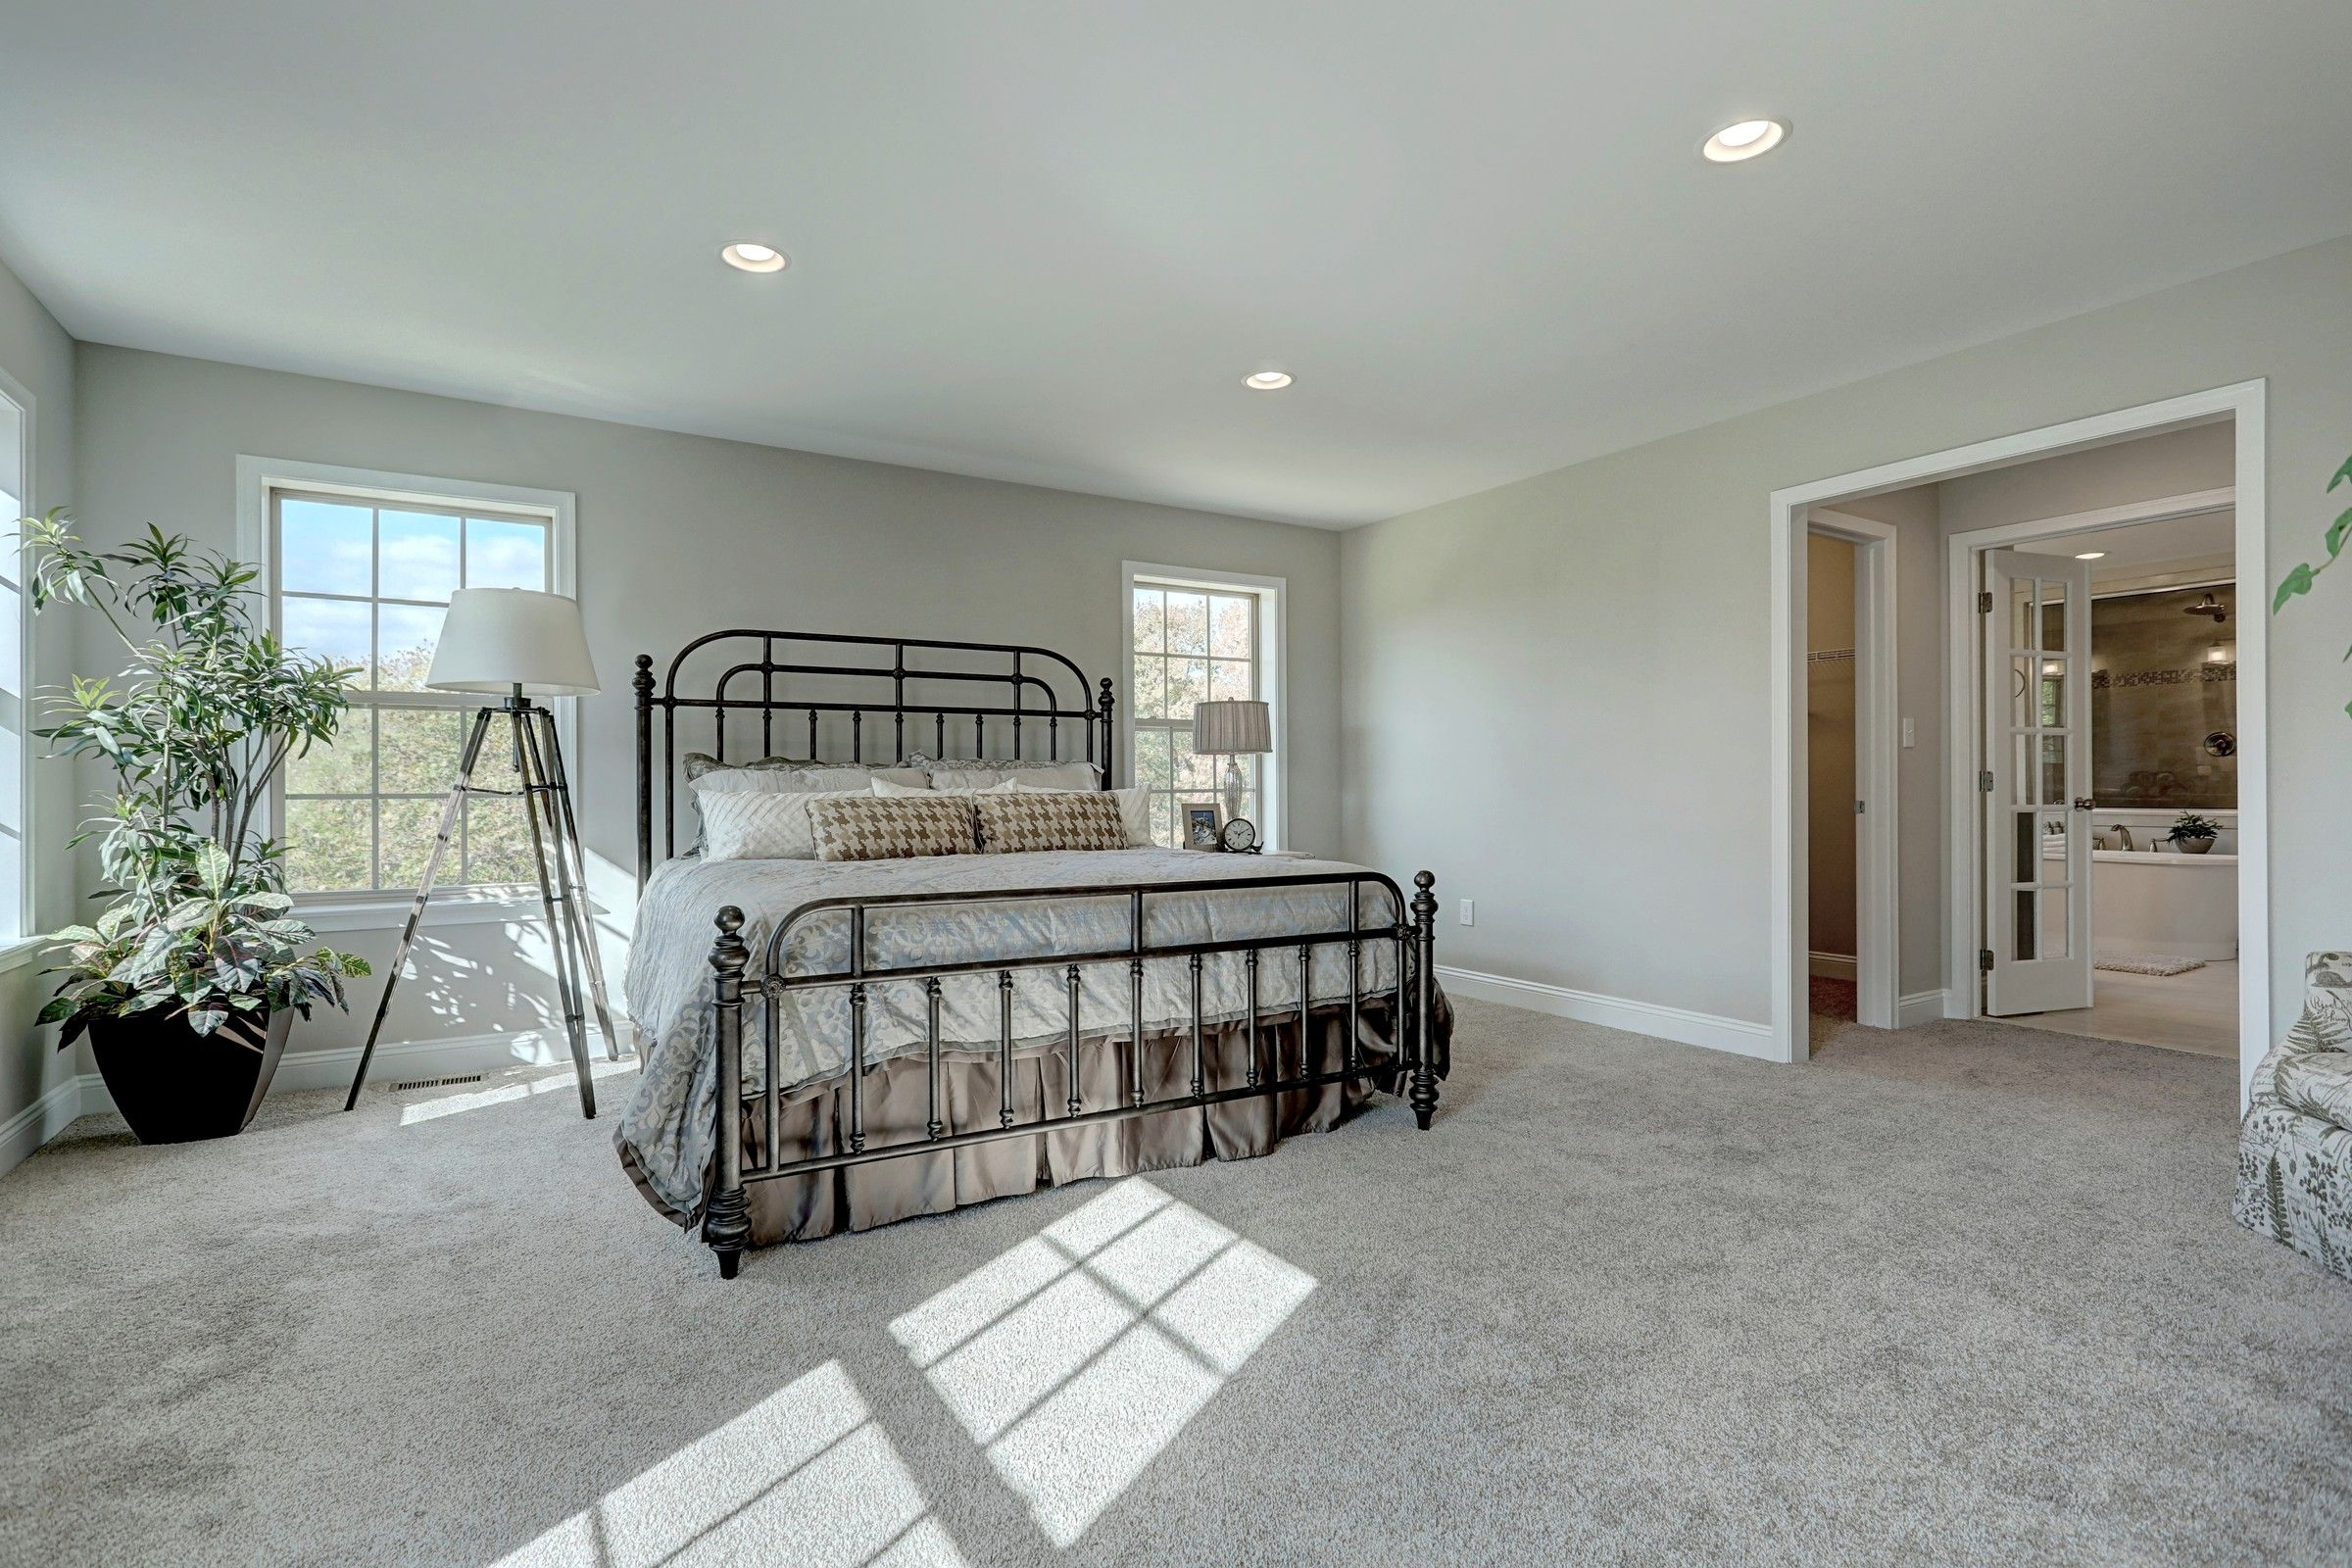 Bedroom featured in the Covington Manor By Keystone Custom Homes in Baltimore, MD